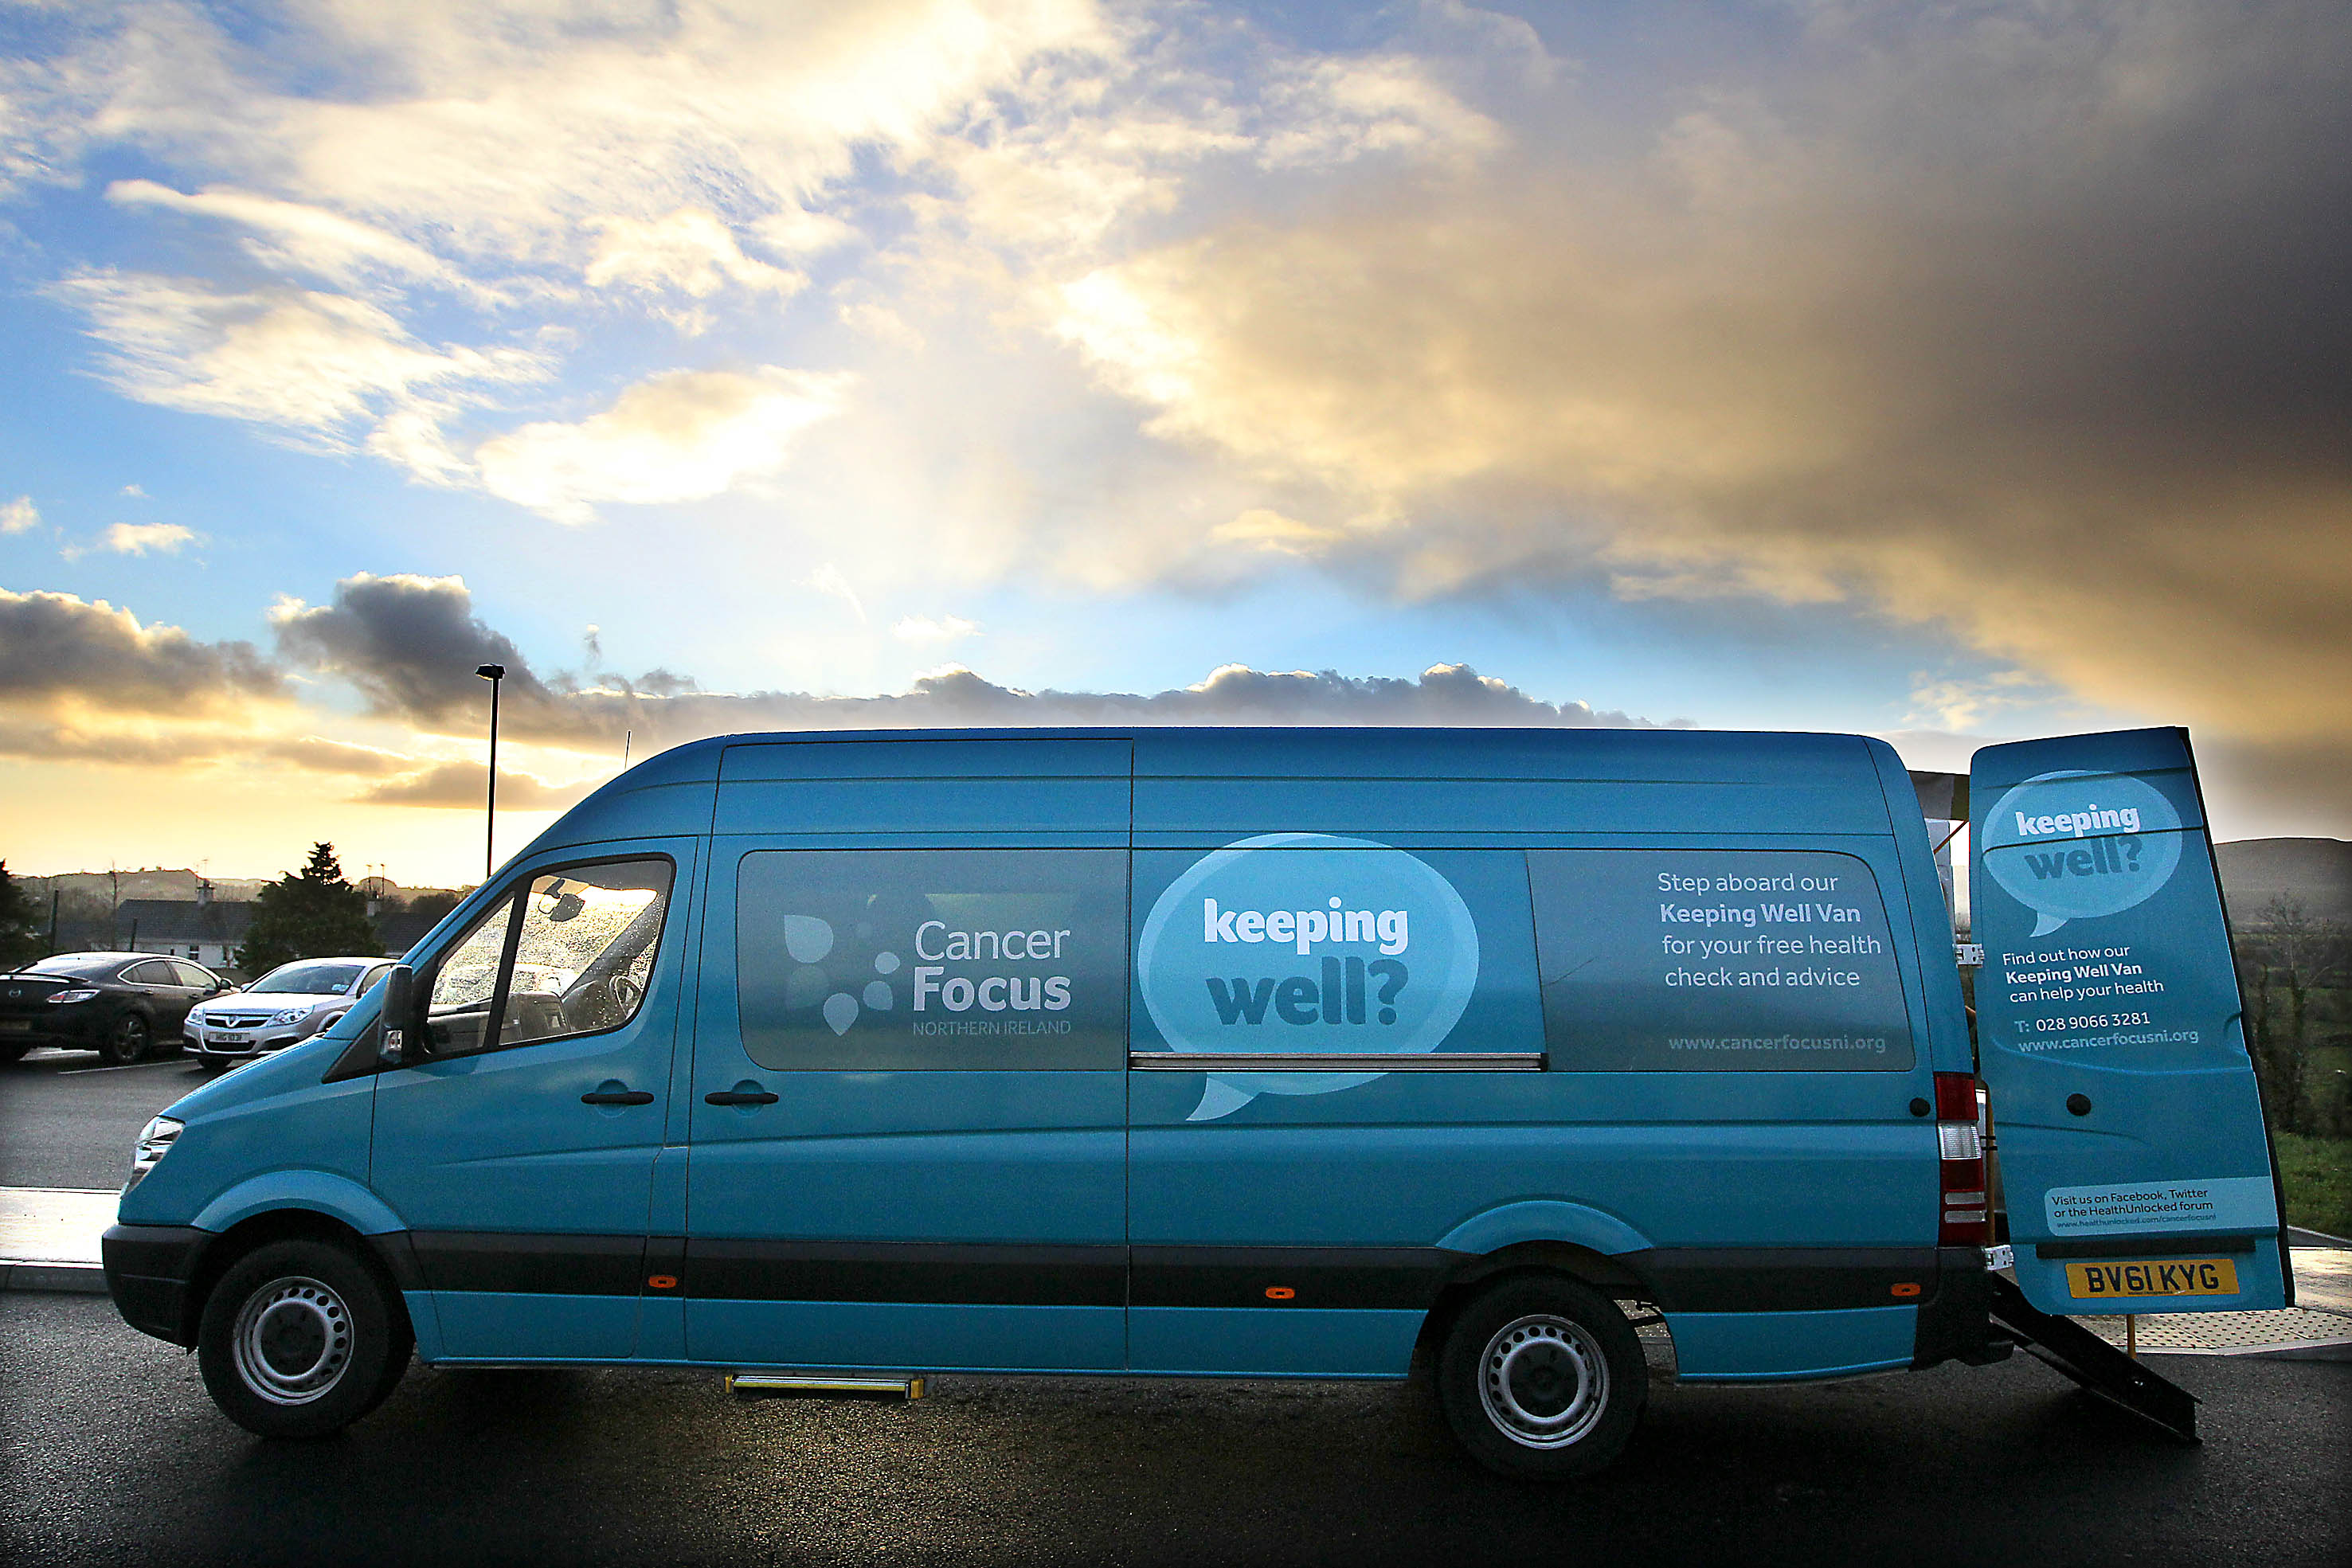 Health check van is coming to Fermanagh GAA clubs